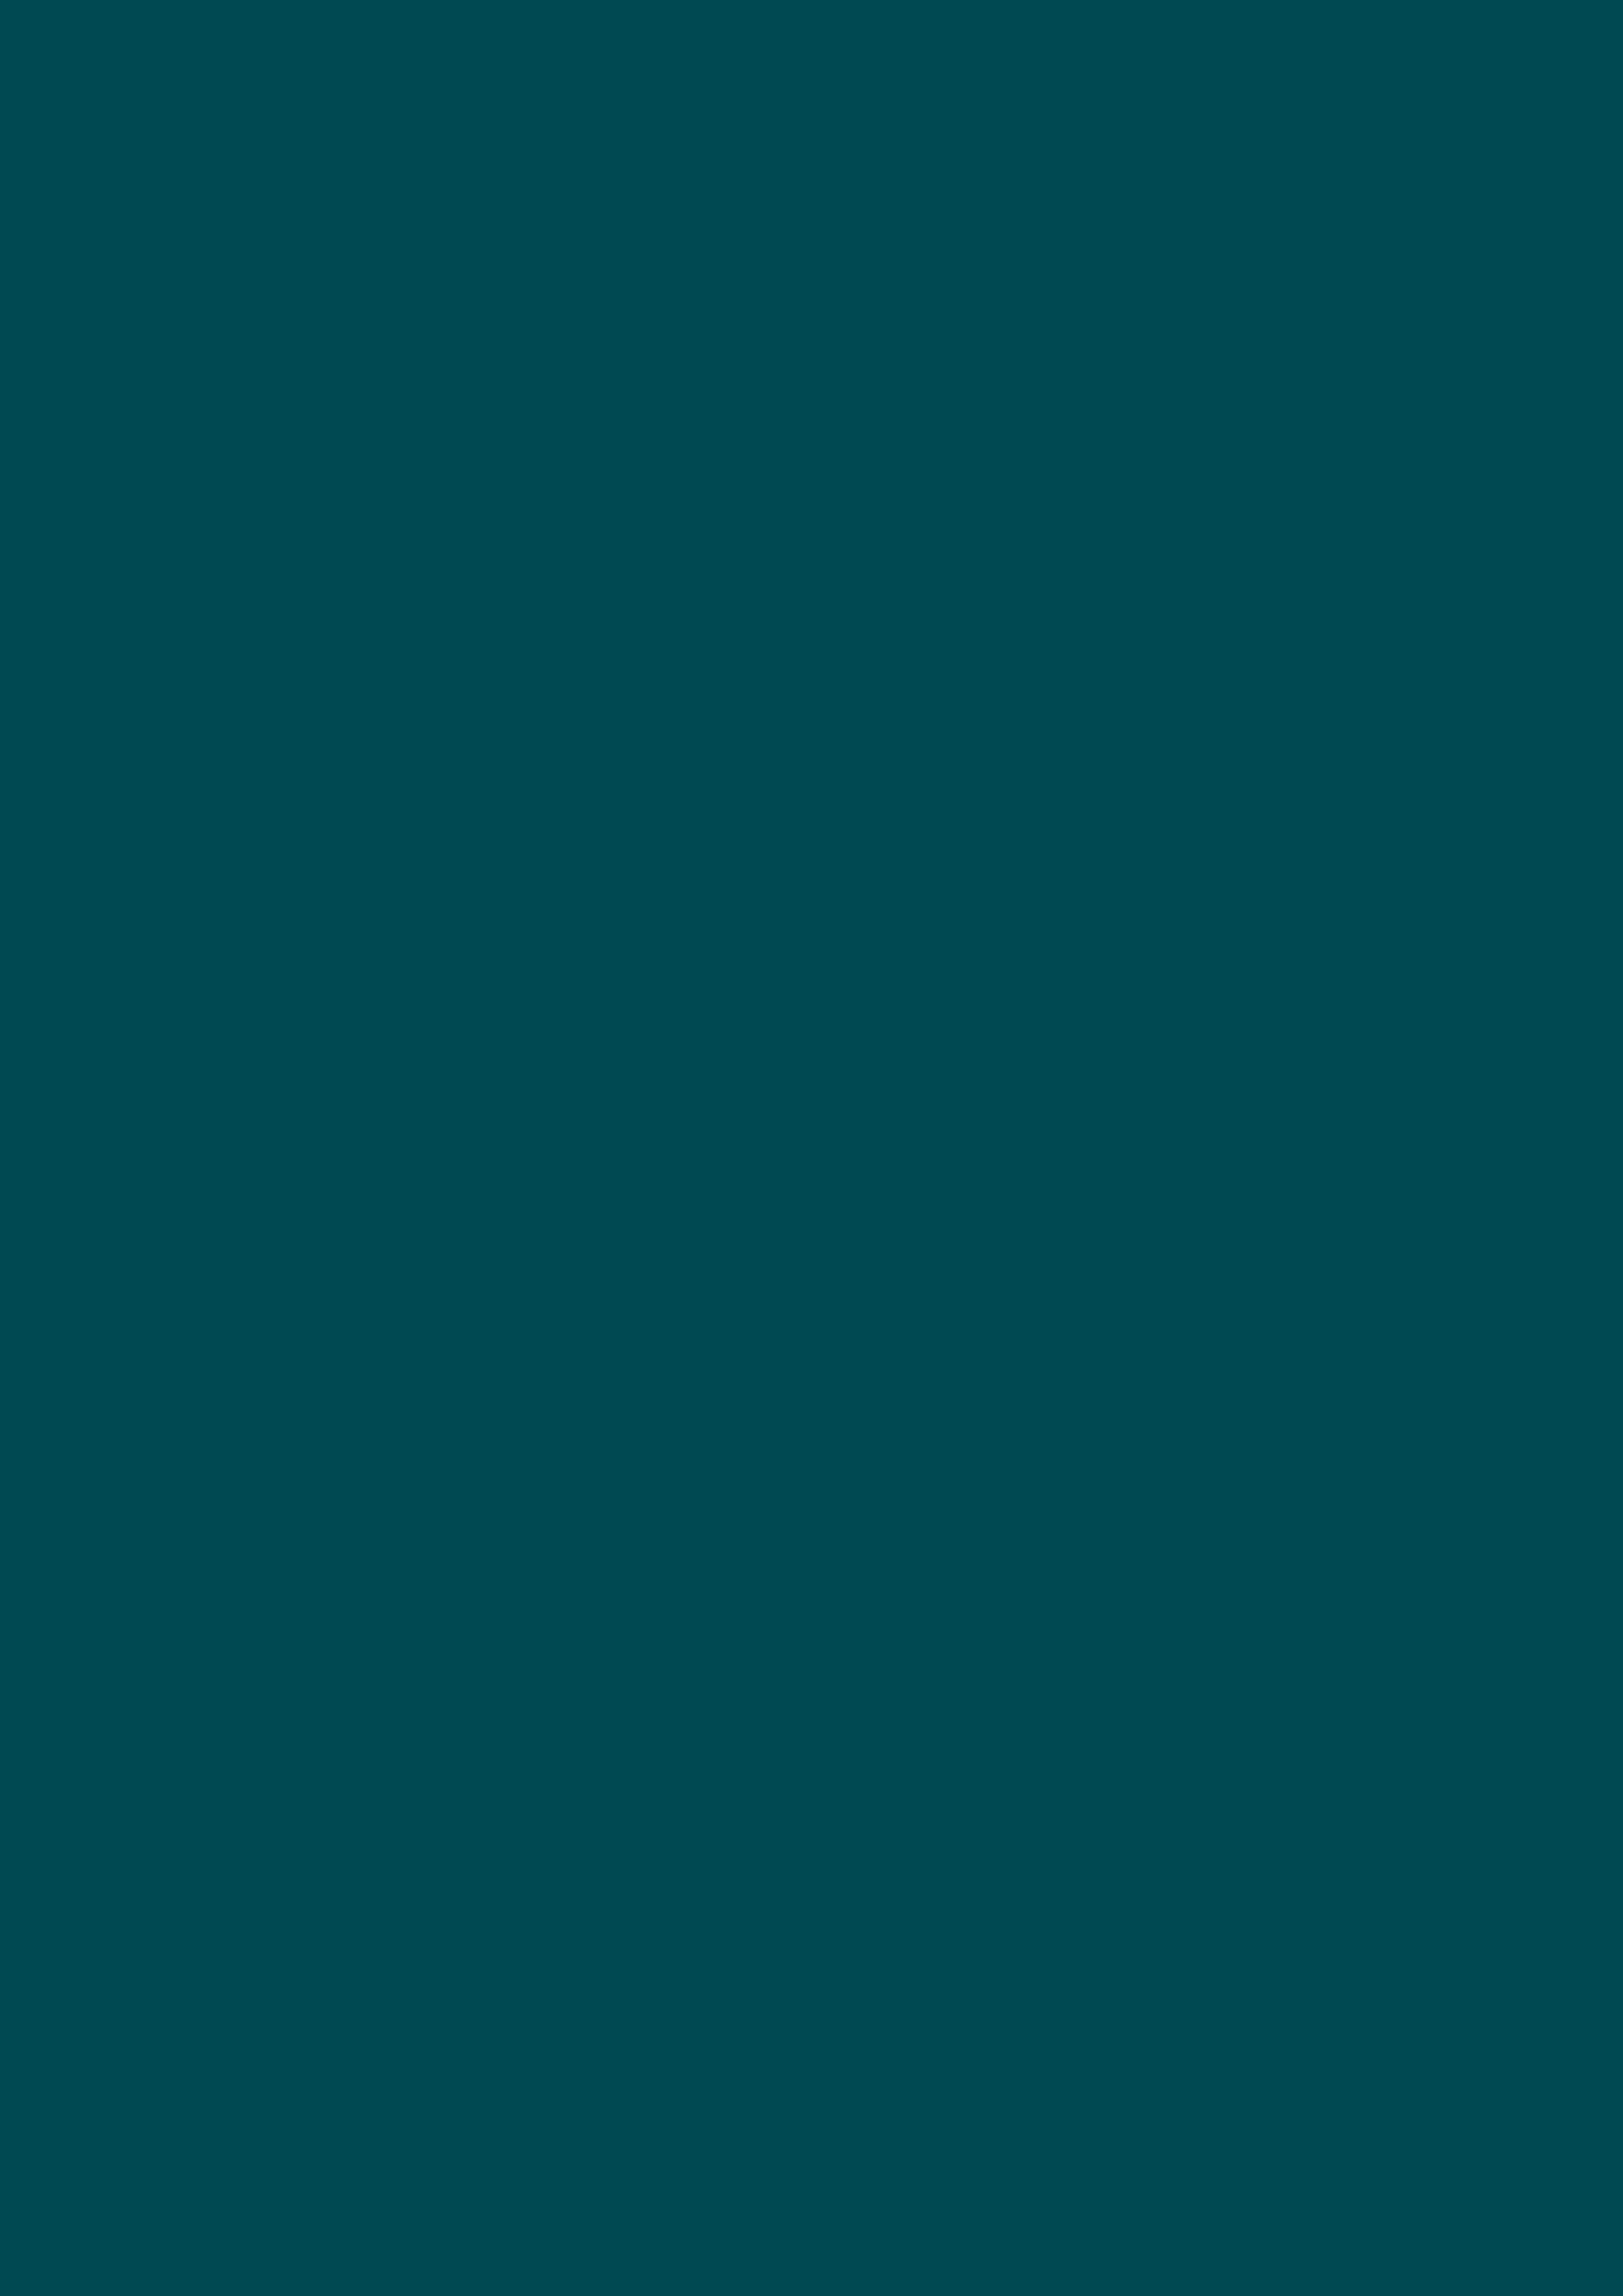 2480x3508 Midnight Green Solid Color Background